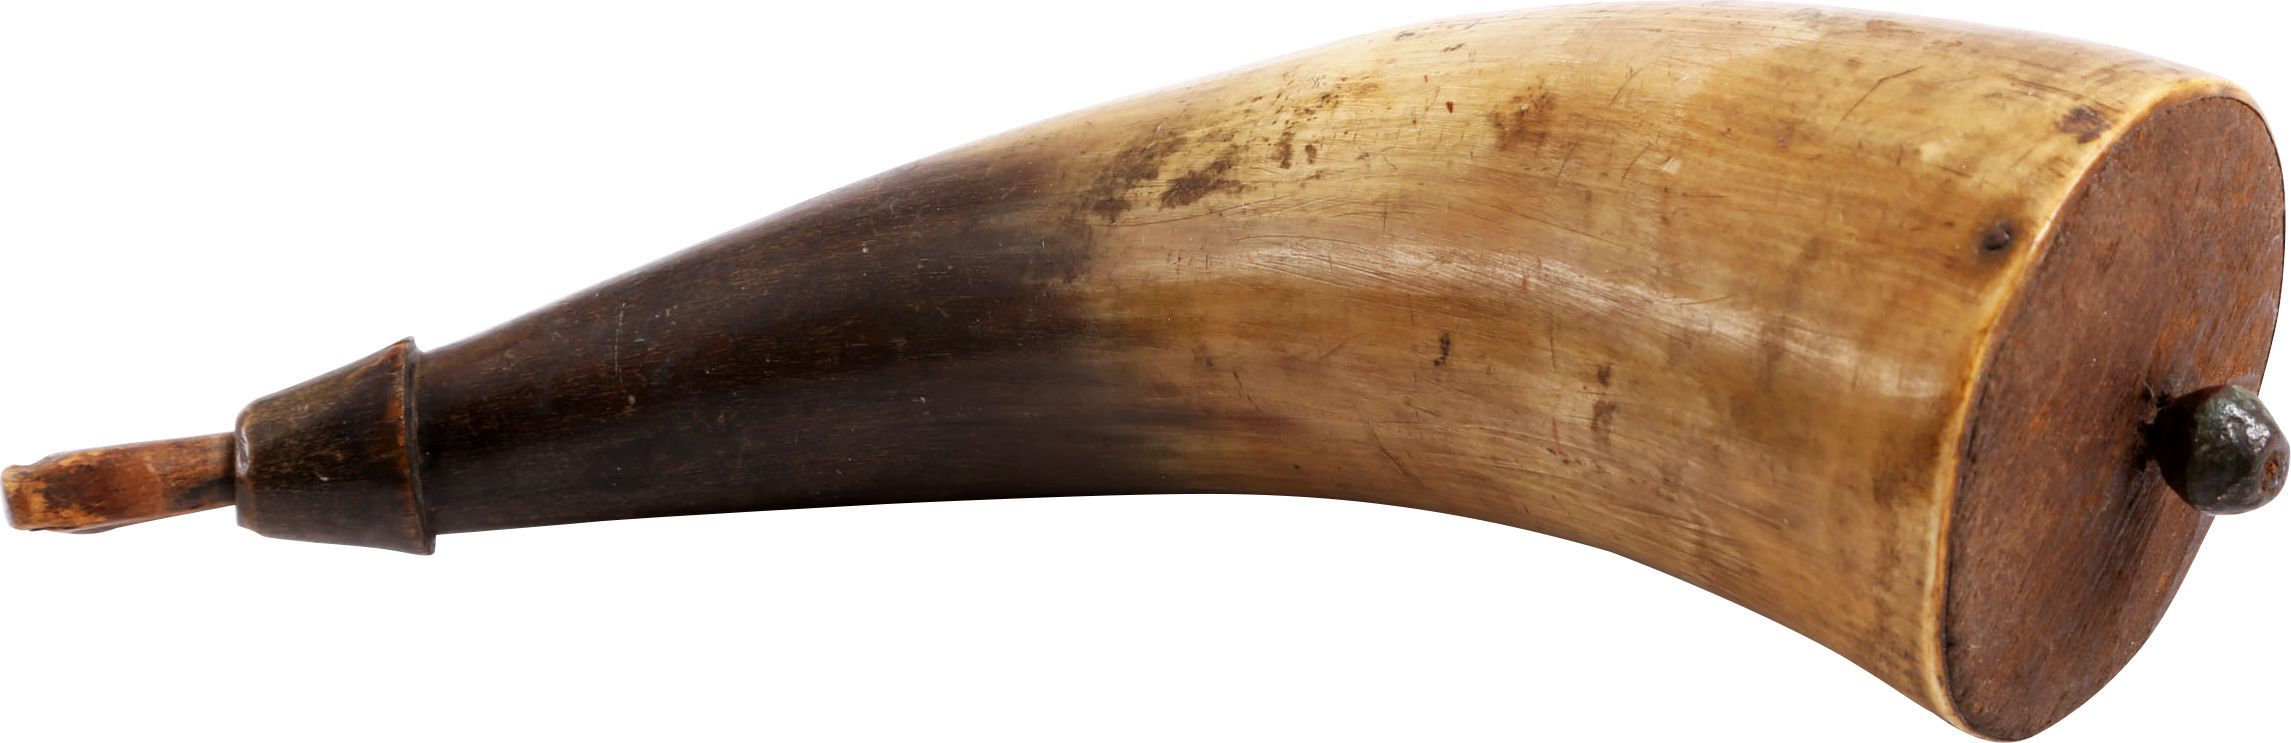 REVOLUTIONARY WAR POWDER HORN